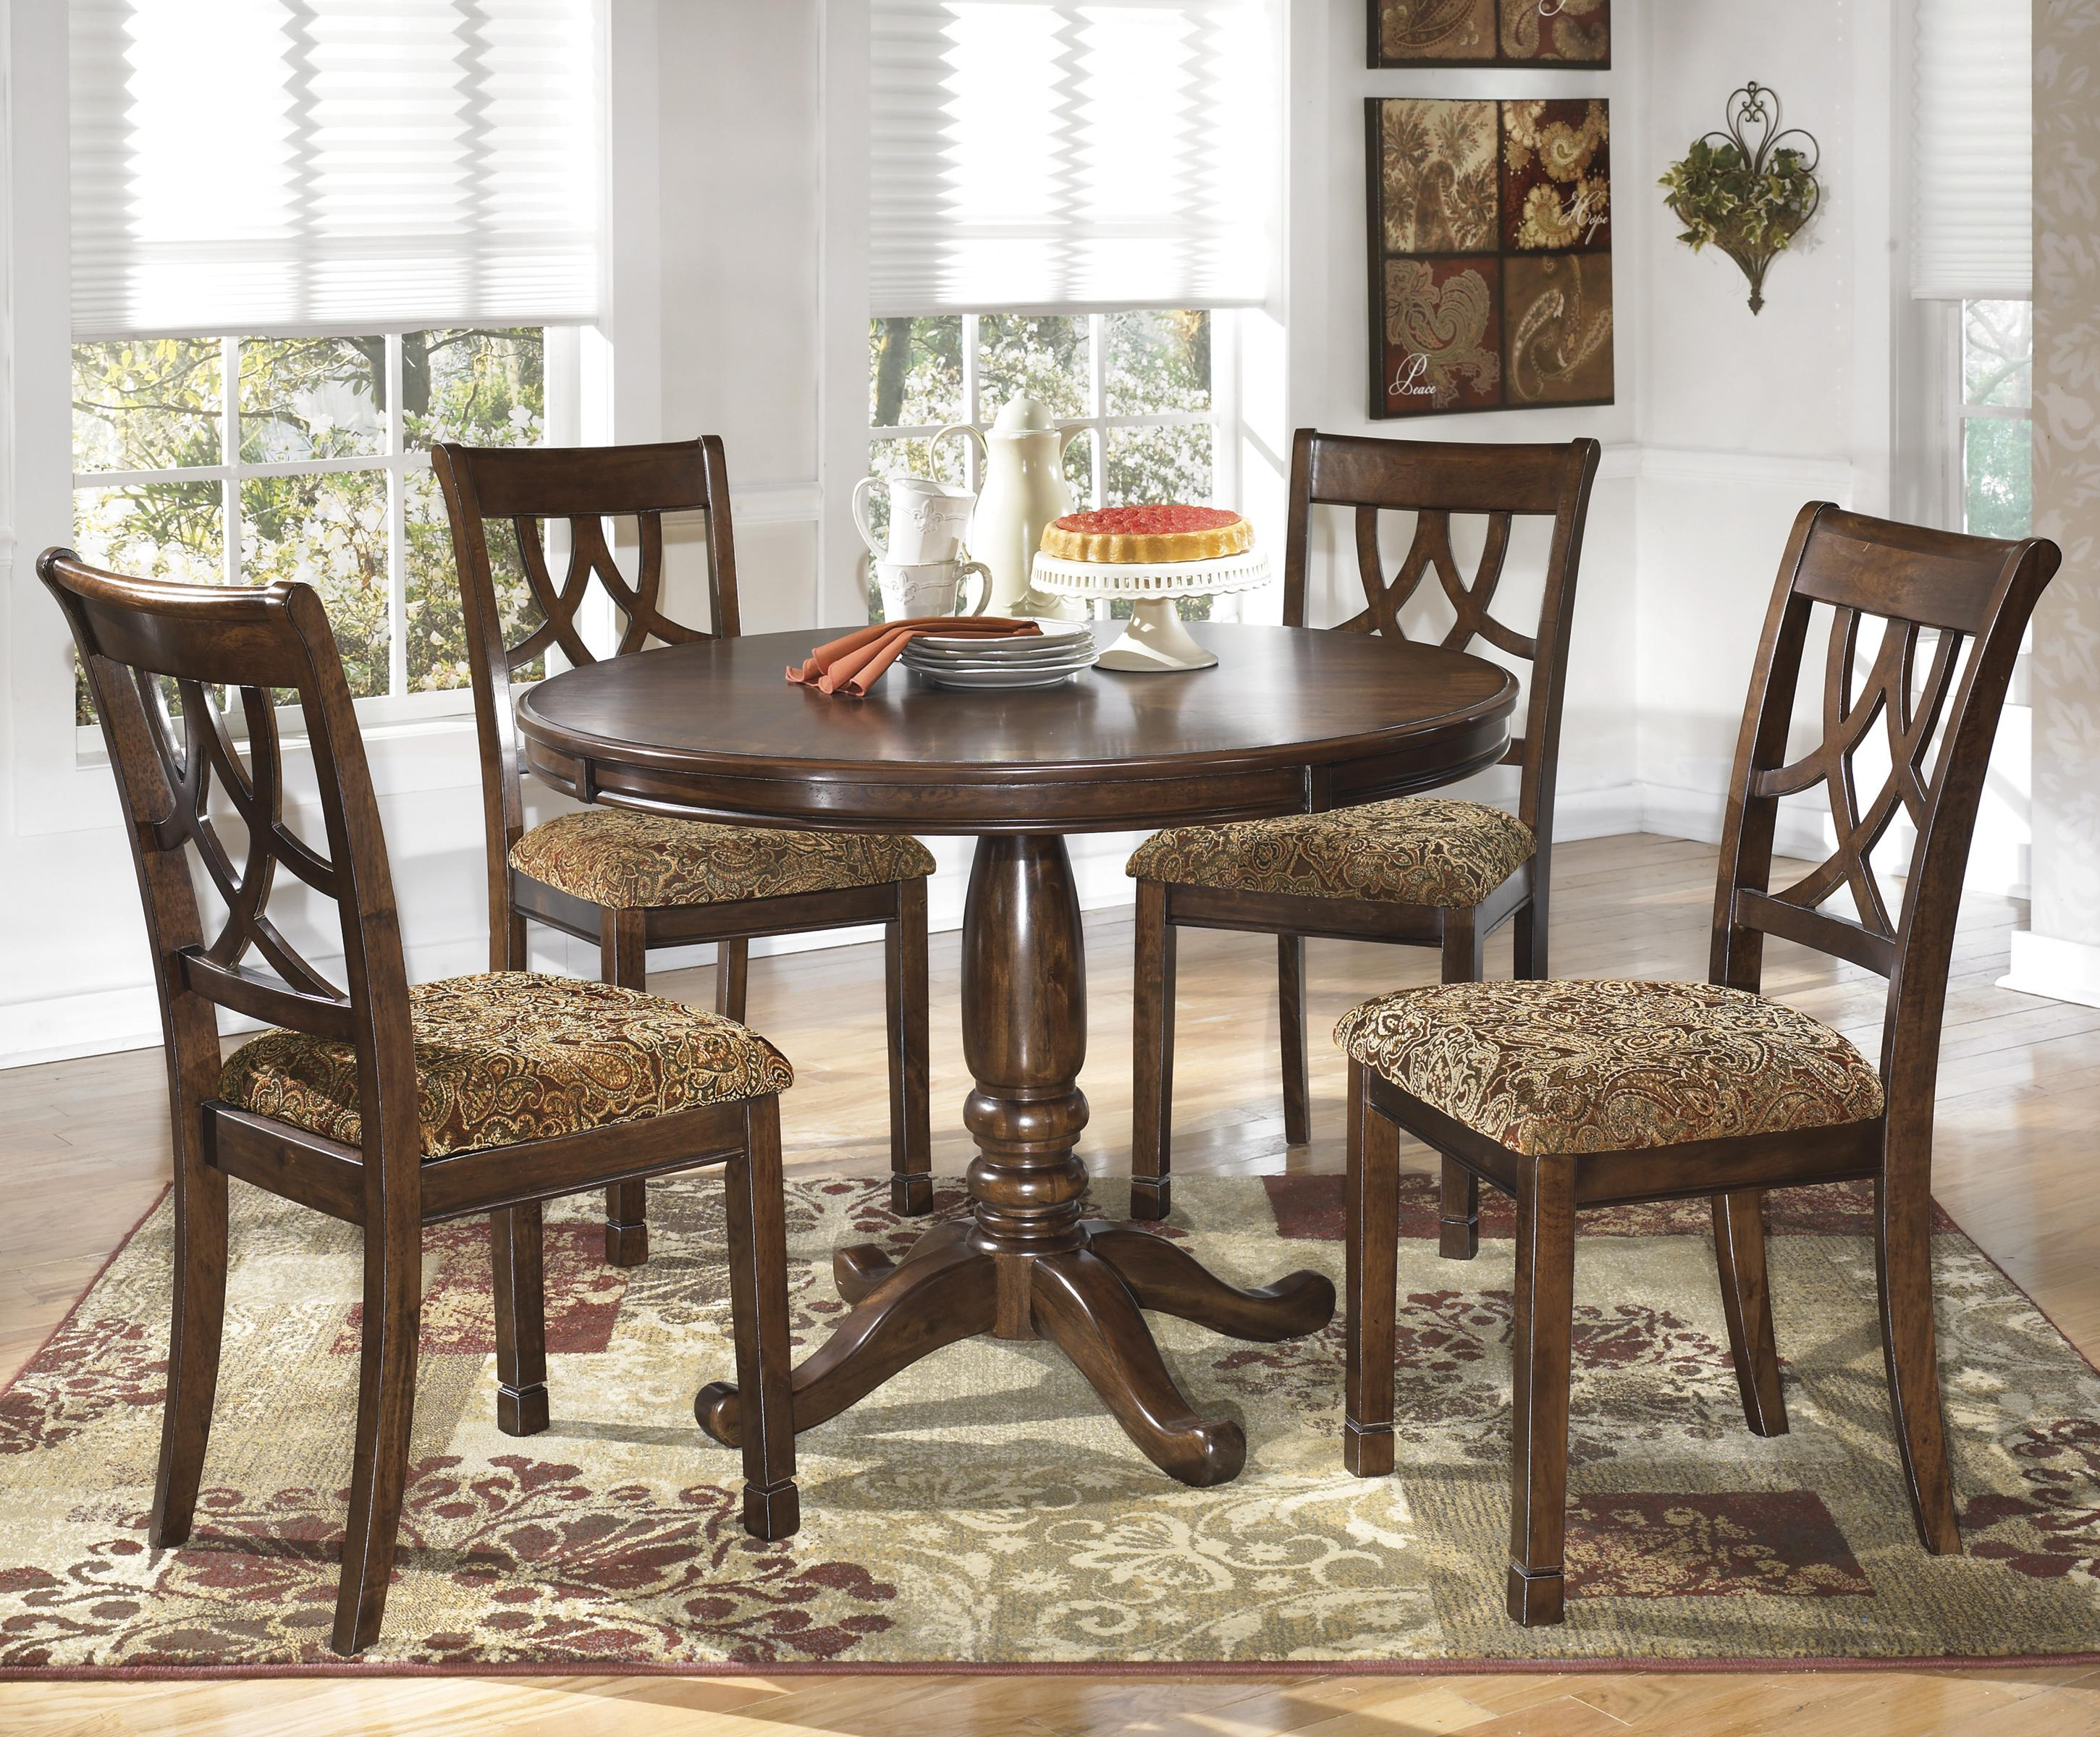 Leahlyn Leahlyn 5-Piece Dining Set by Ashley at Morris Home